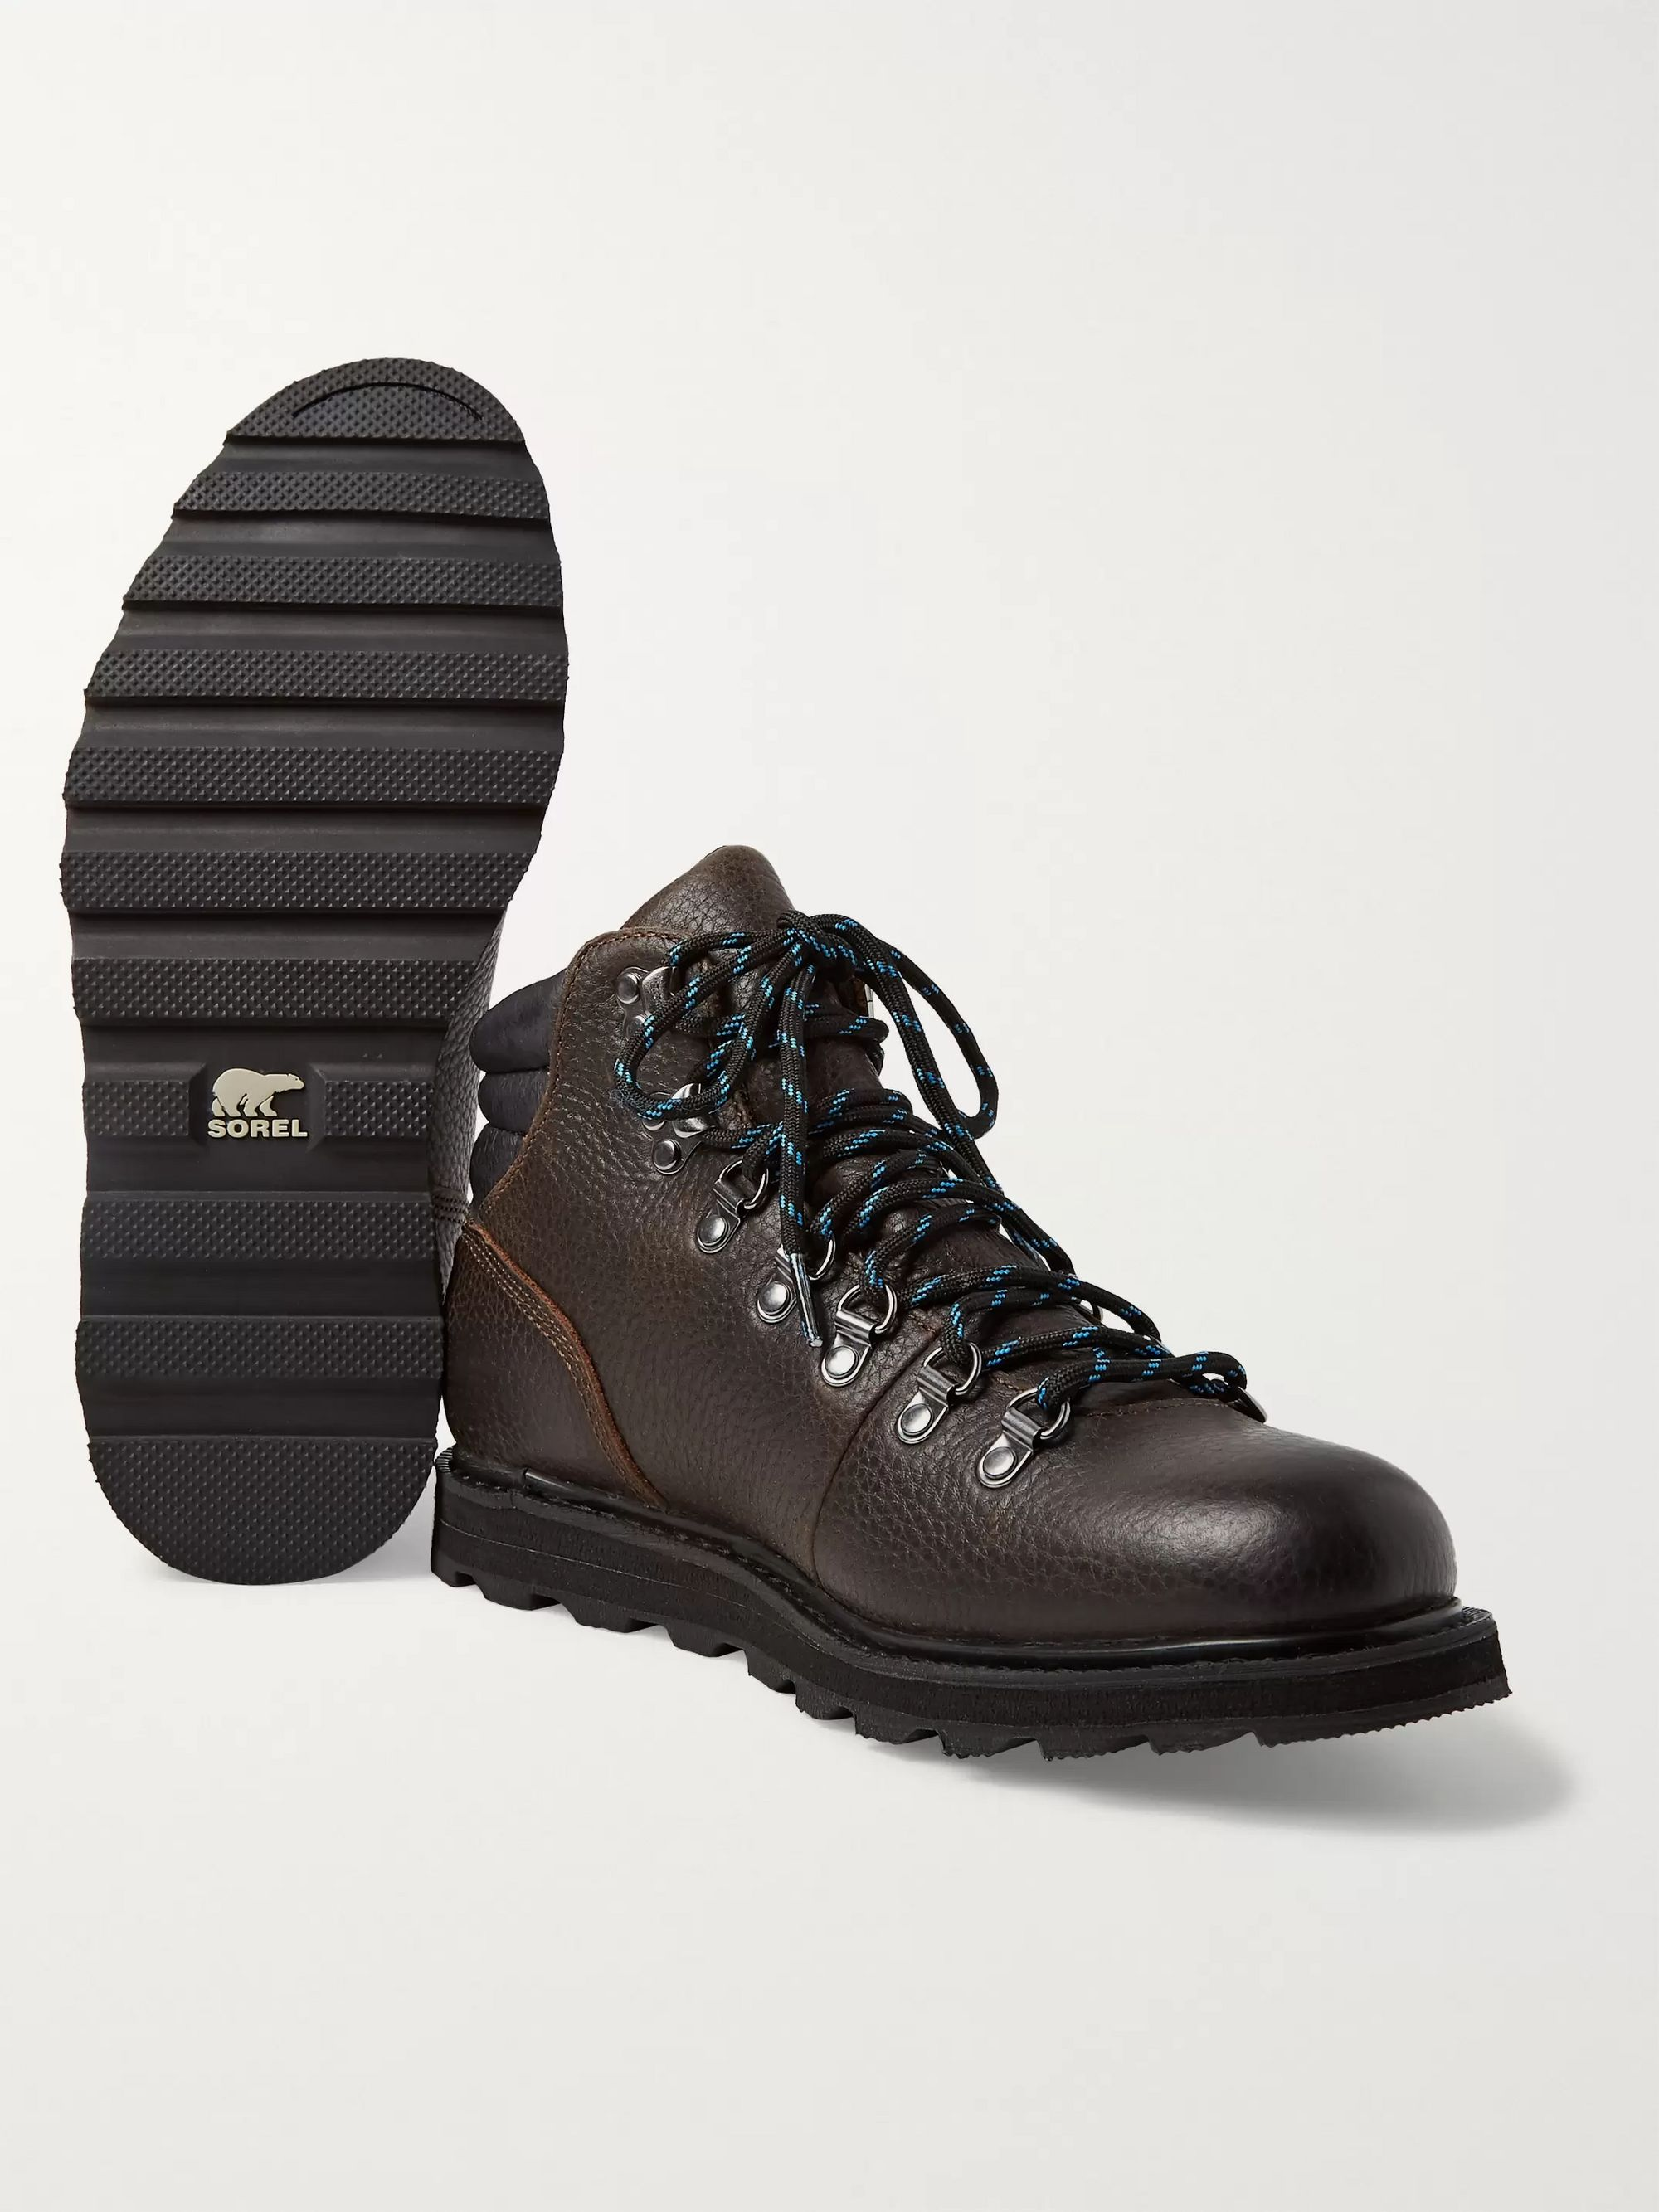 Sorel Madison Hiker Waterproof Full-Grain Leather Boots